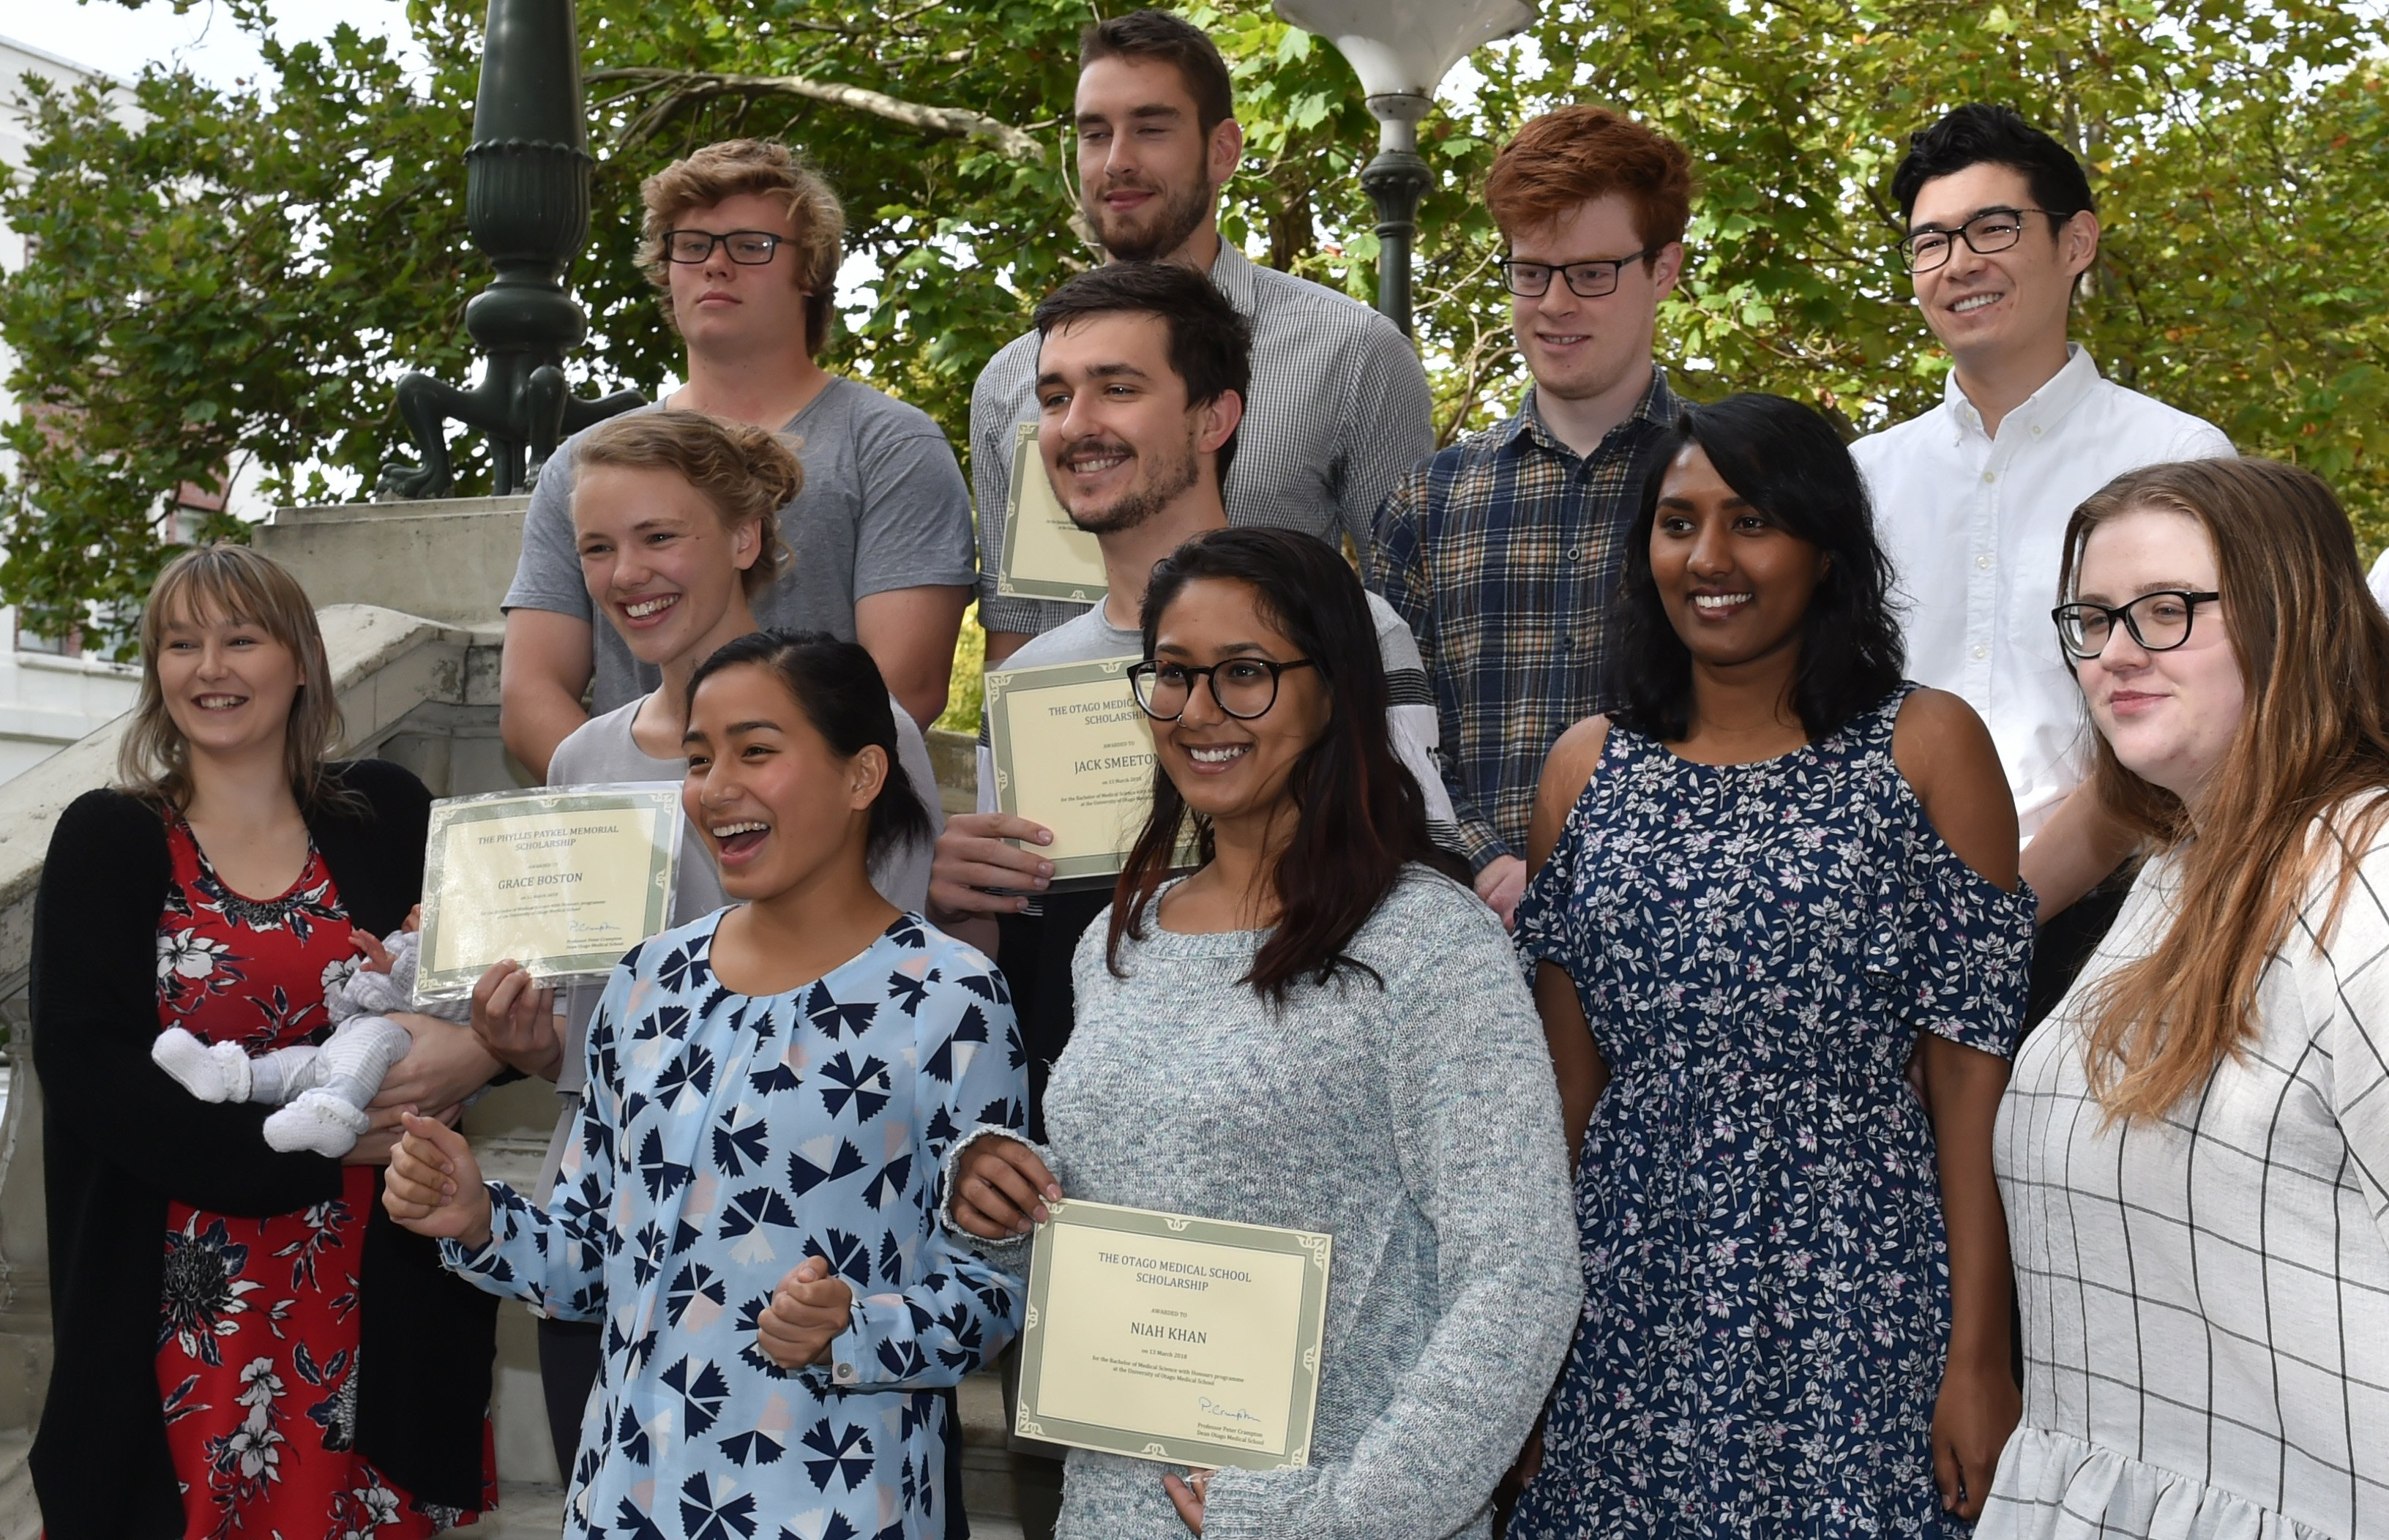 University of Otago bachelor of medical science honours award recipients are (from left, front) Mary Cane Demecillo, Niah Khan, (second row ) Bryony Harrison and her son Aurelius Yates, Grace Boston, Jack Smeeton, Danushi Peiris, Laura Bolger, (back row)